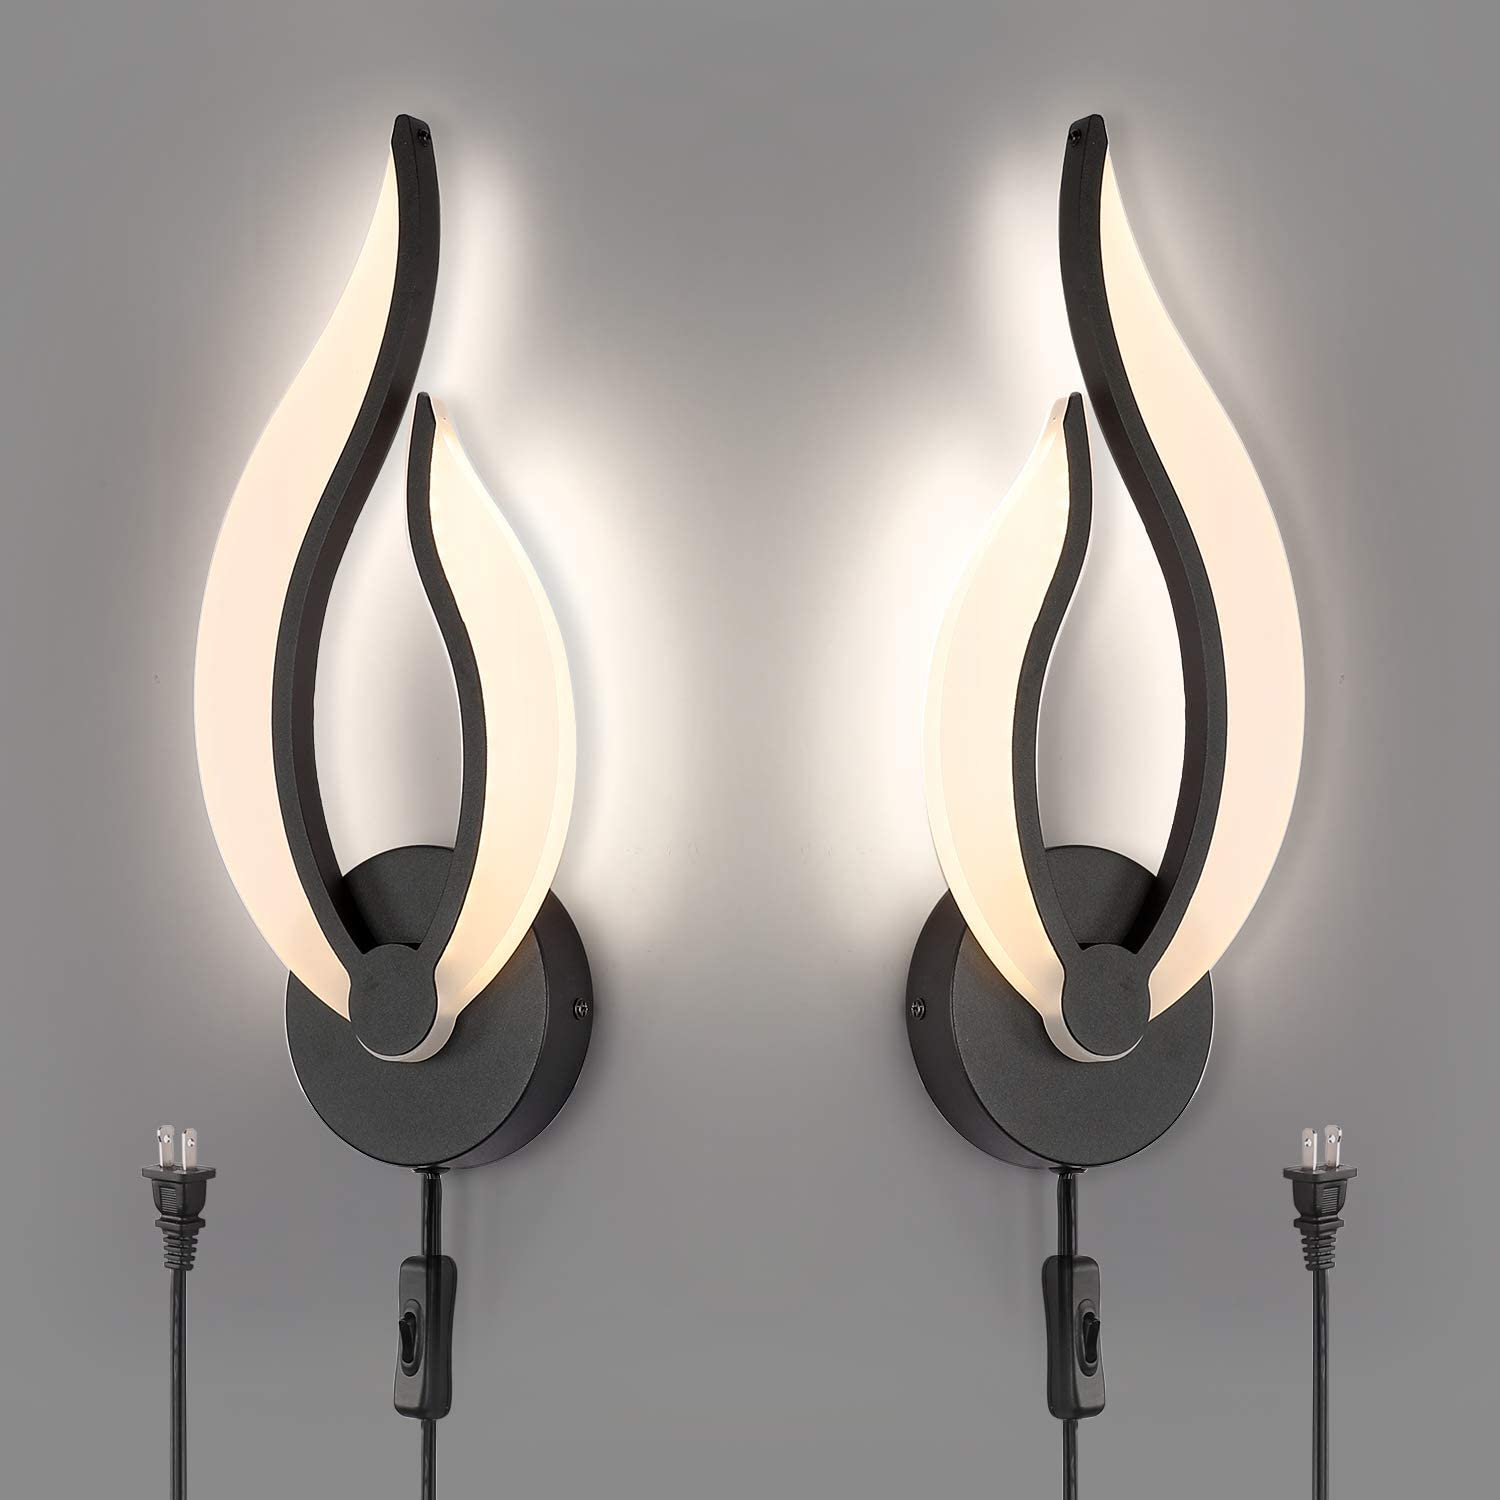 Pasoar Black Wall Light Modern LED Wall Lamps for Bedrooms Set of 2, Plug in Wall Light Fixtures 3000K 10Watt Each, LED Wall Light Fixtures